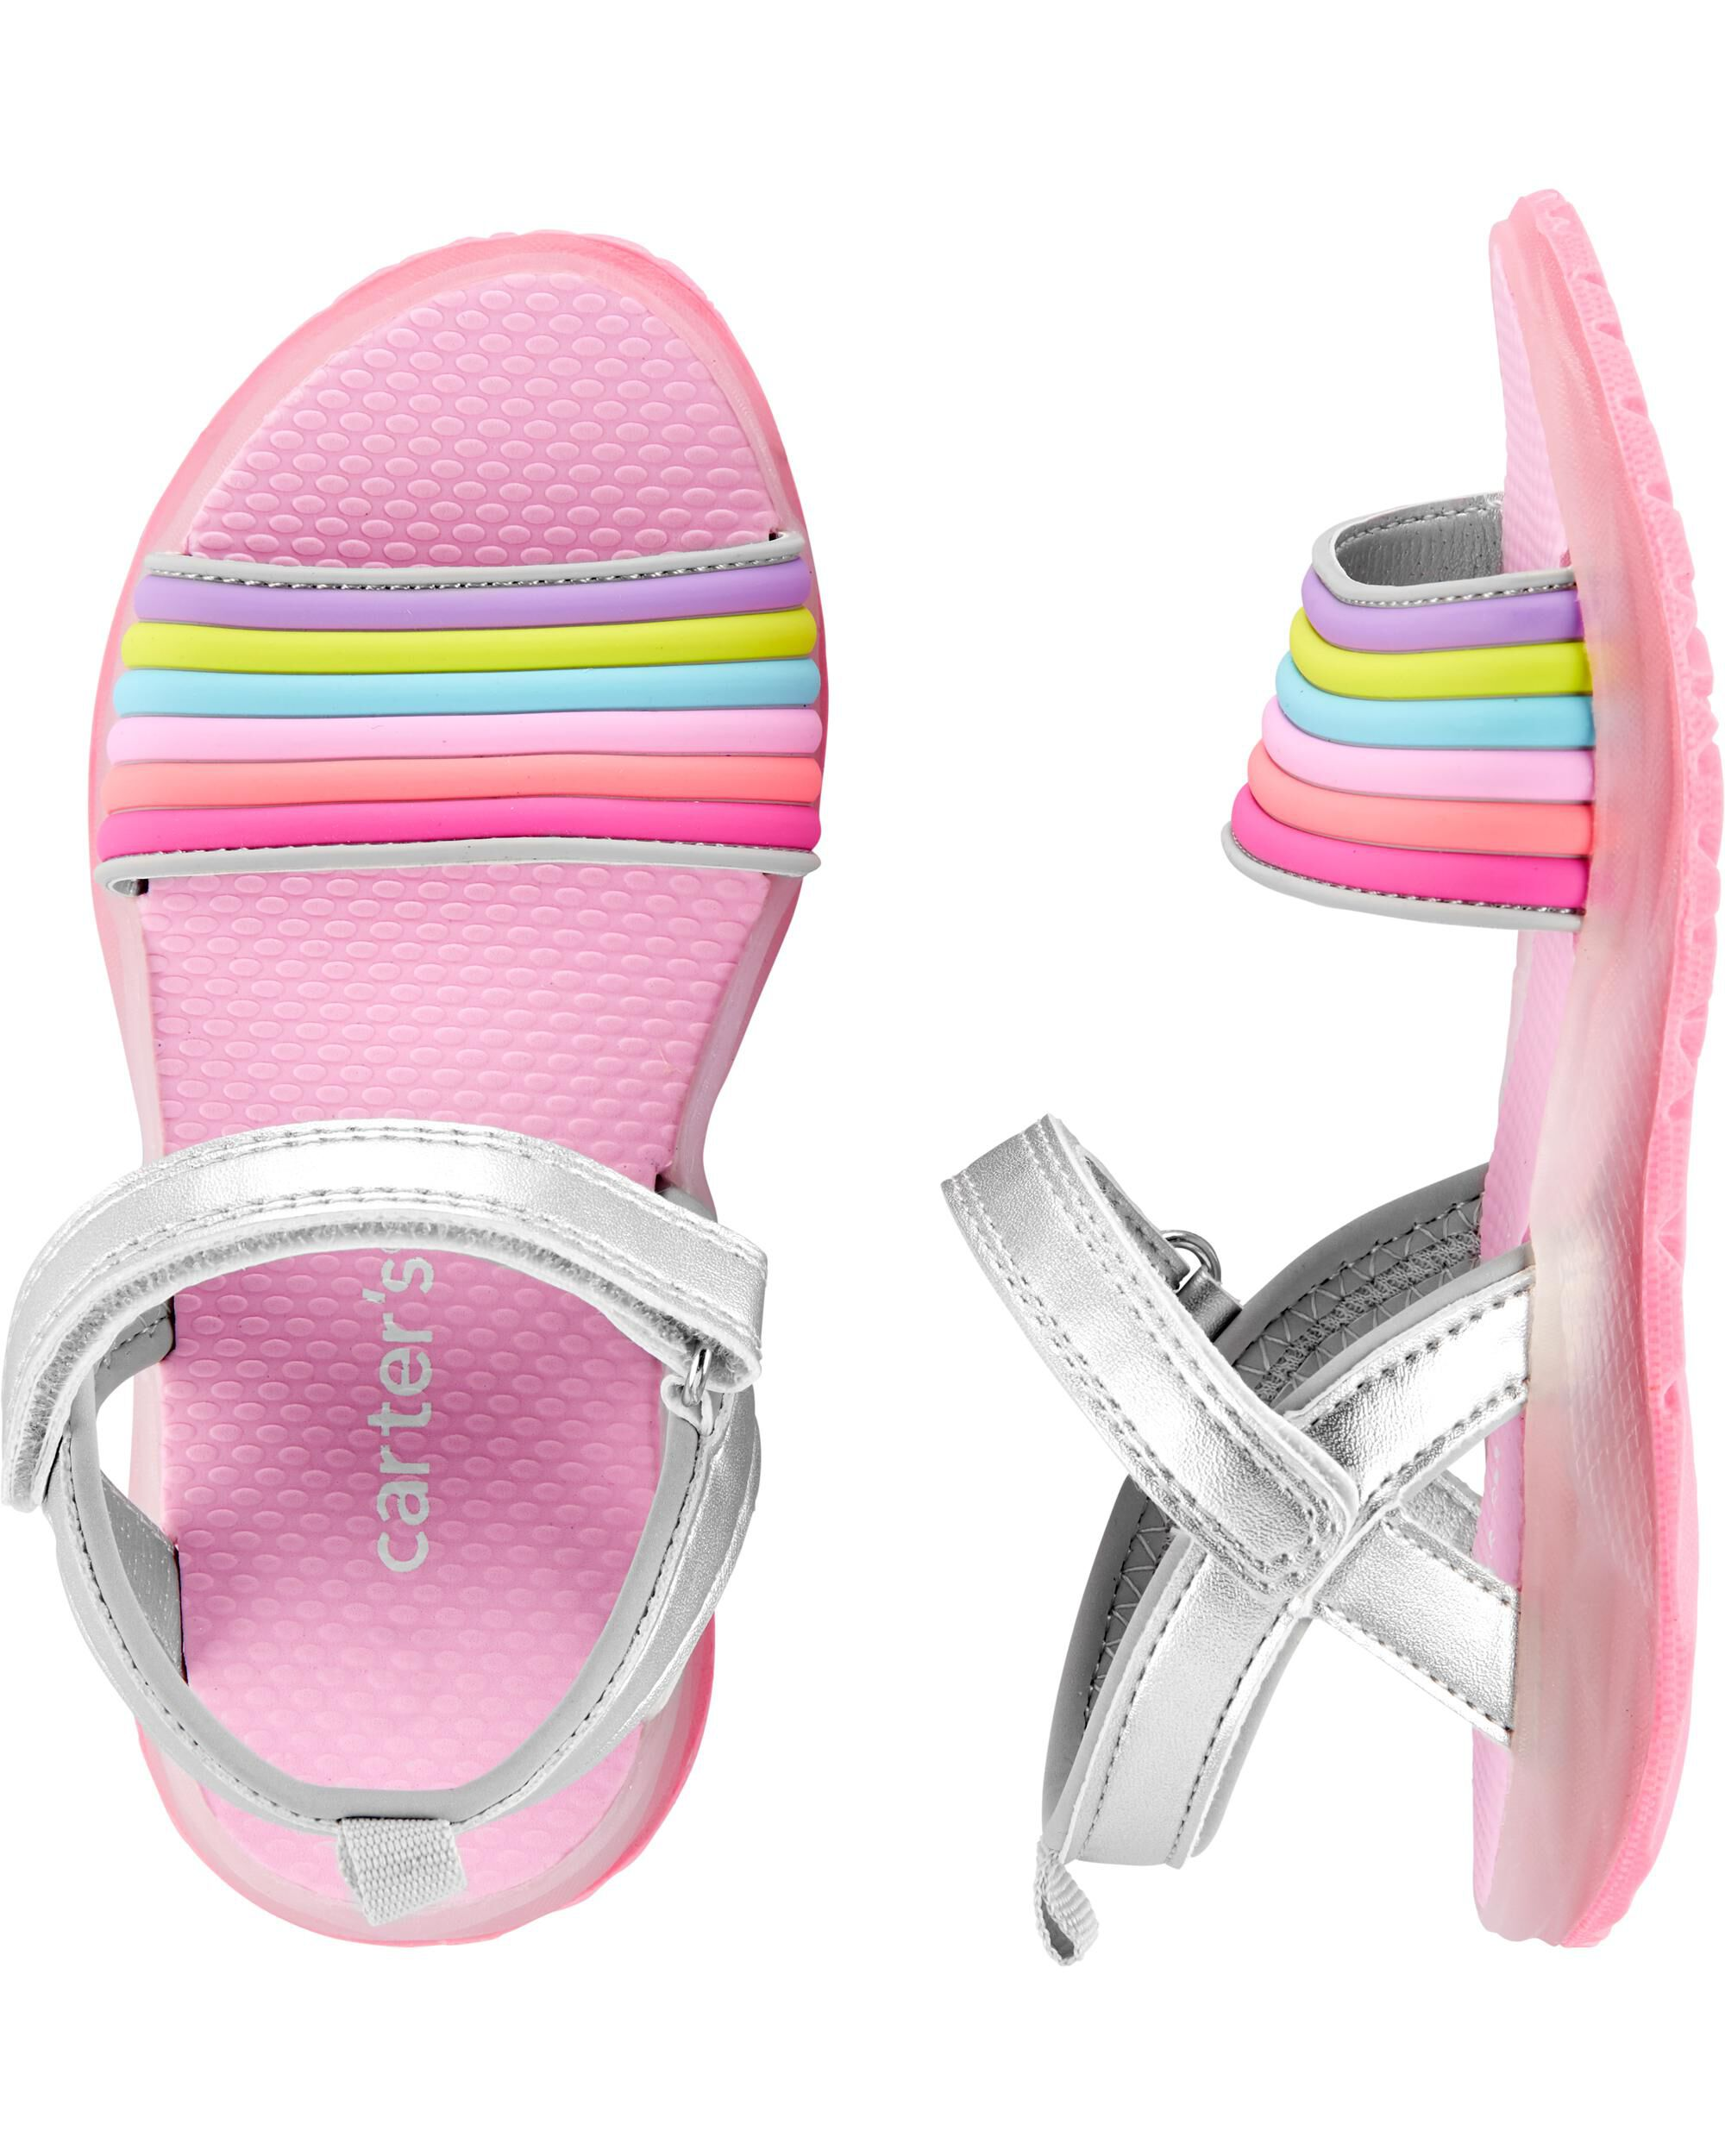 Rainbow Light-Up Sandals